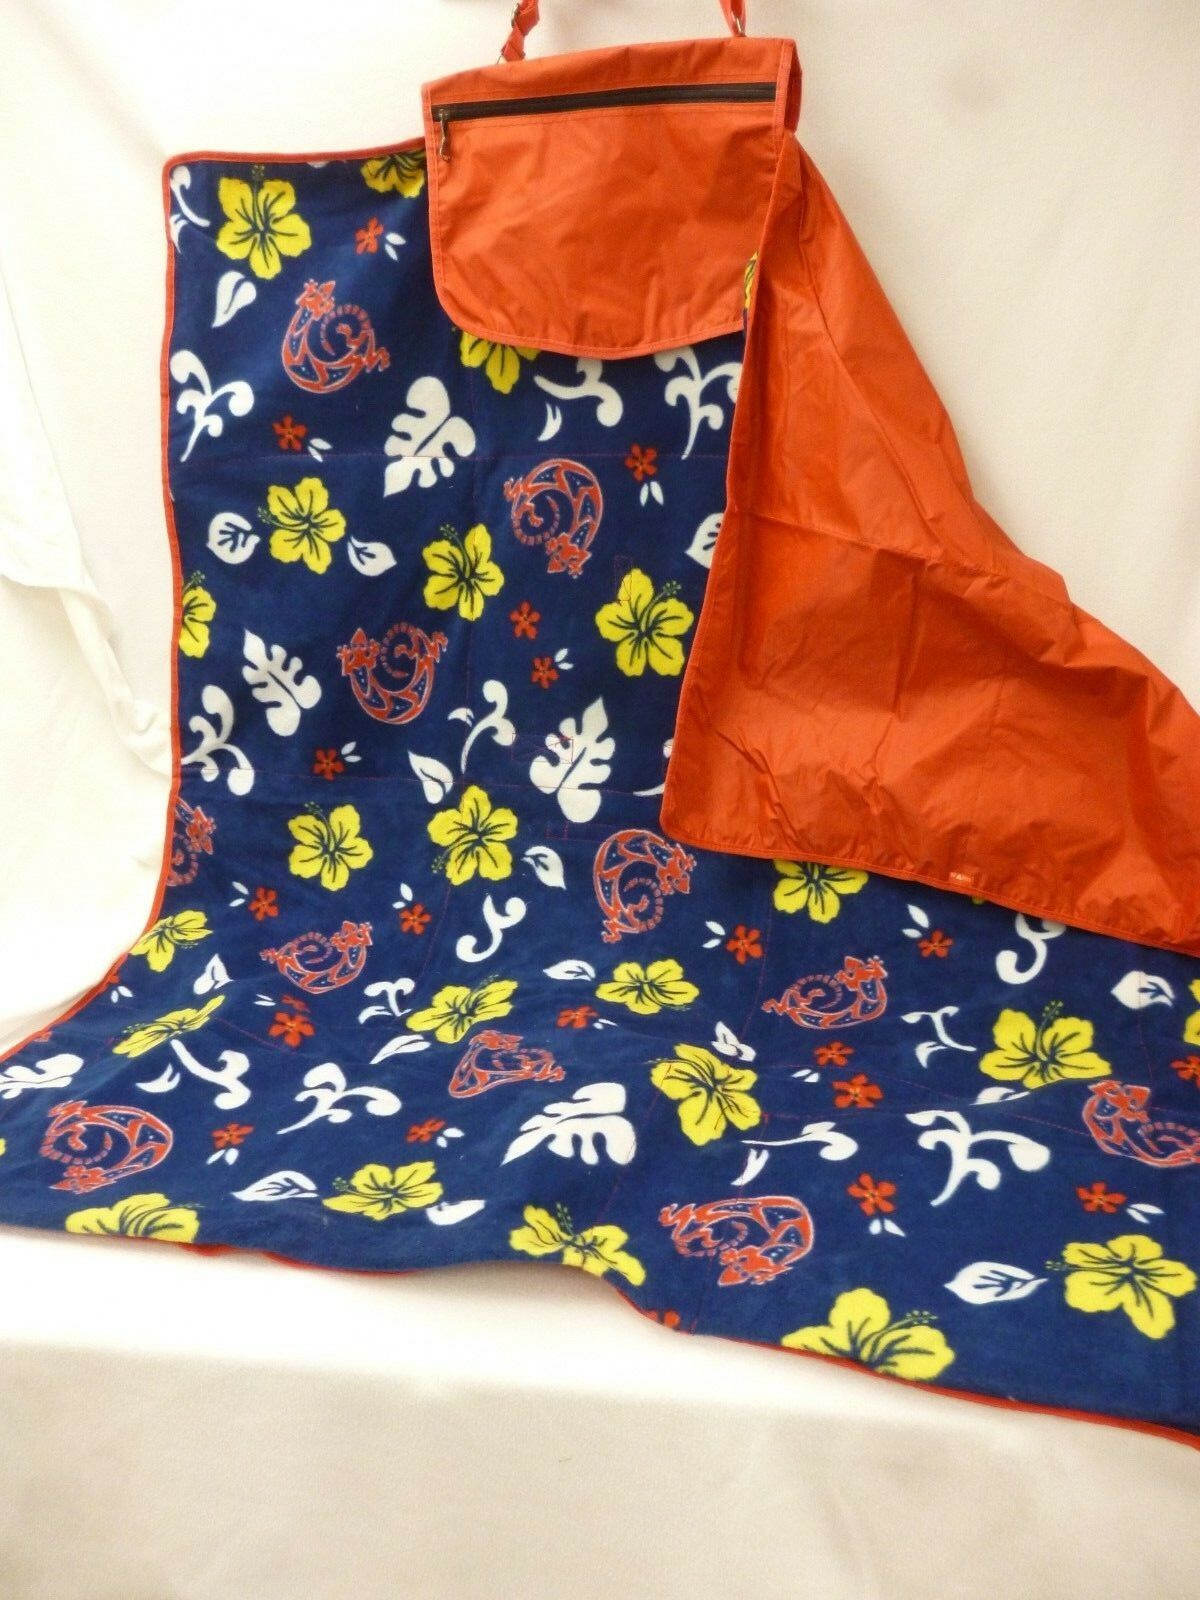 NEW ALOHA BLANKET TOTE PICNIC TIME BUILT IN PILLOWS FOLDING